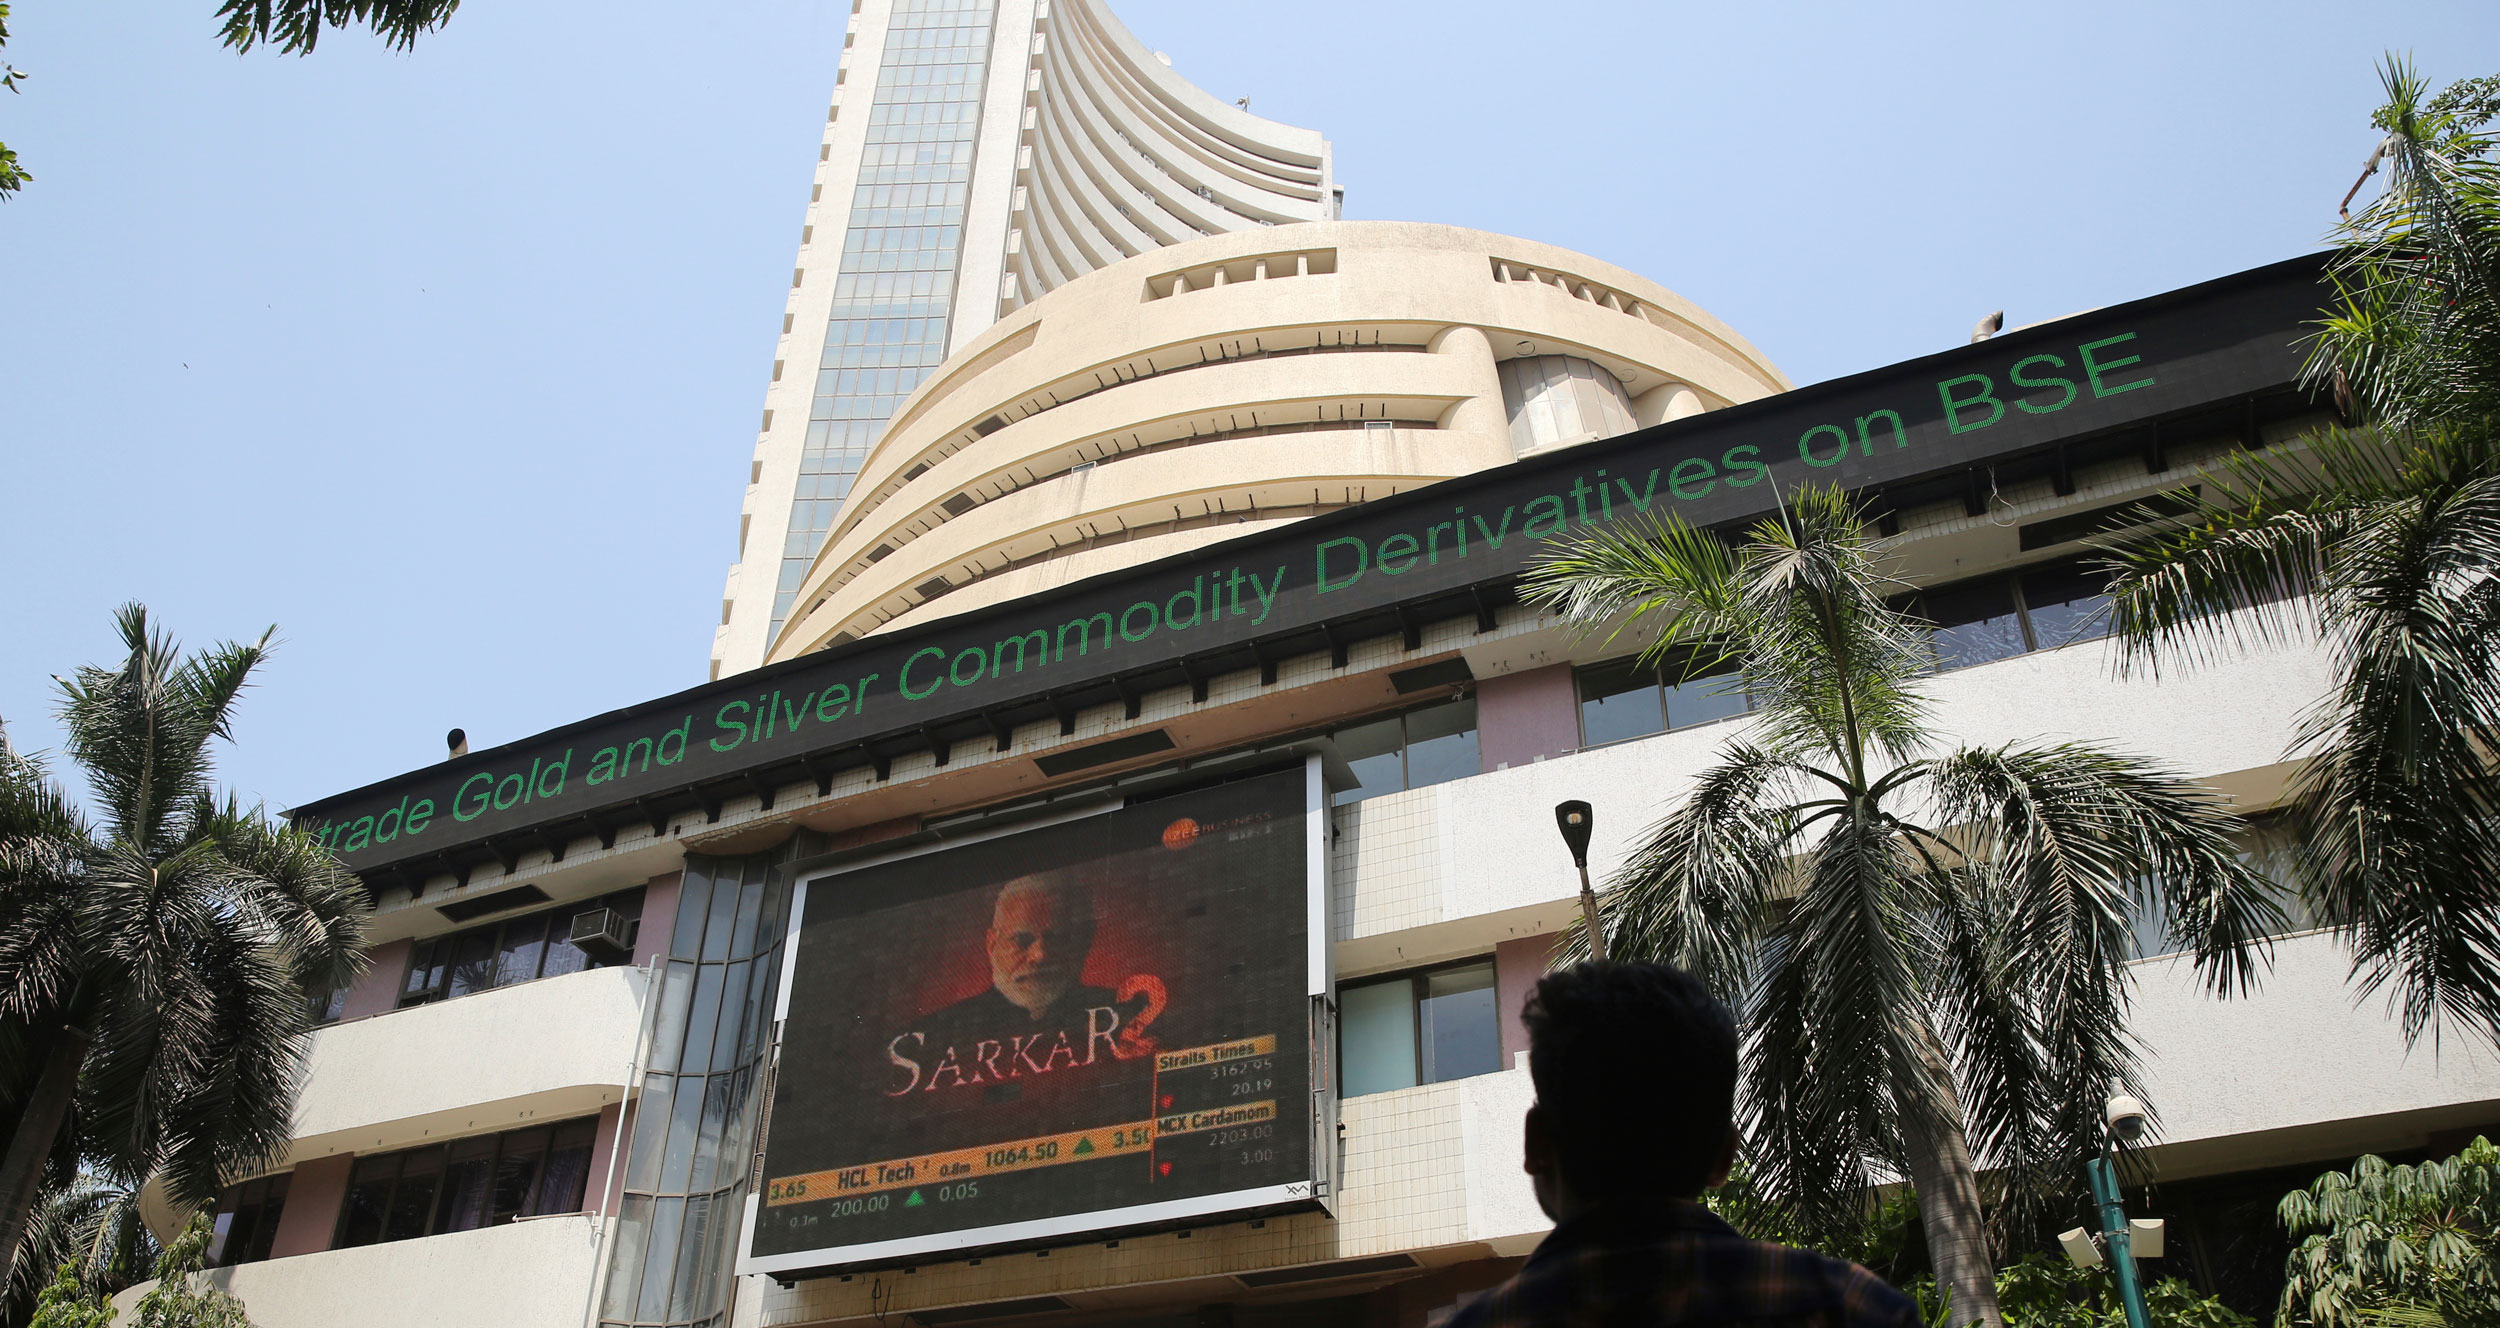 A man watches Indian stock market indices on a display screen on the facade of the BSE building in Mumbai, on May 23, 2019.